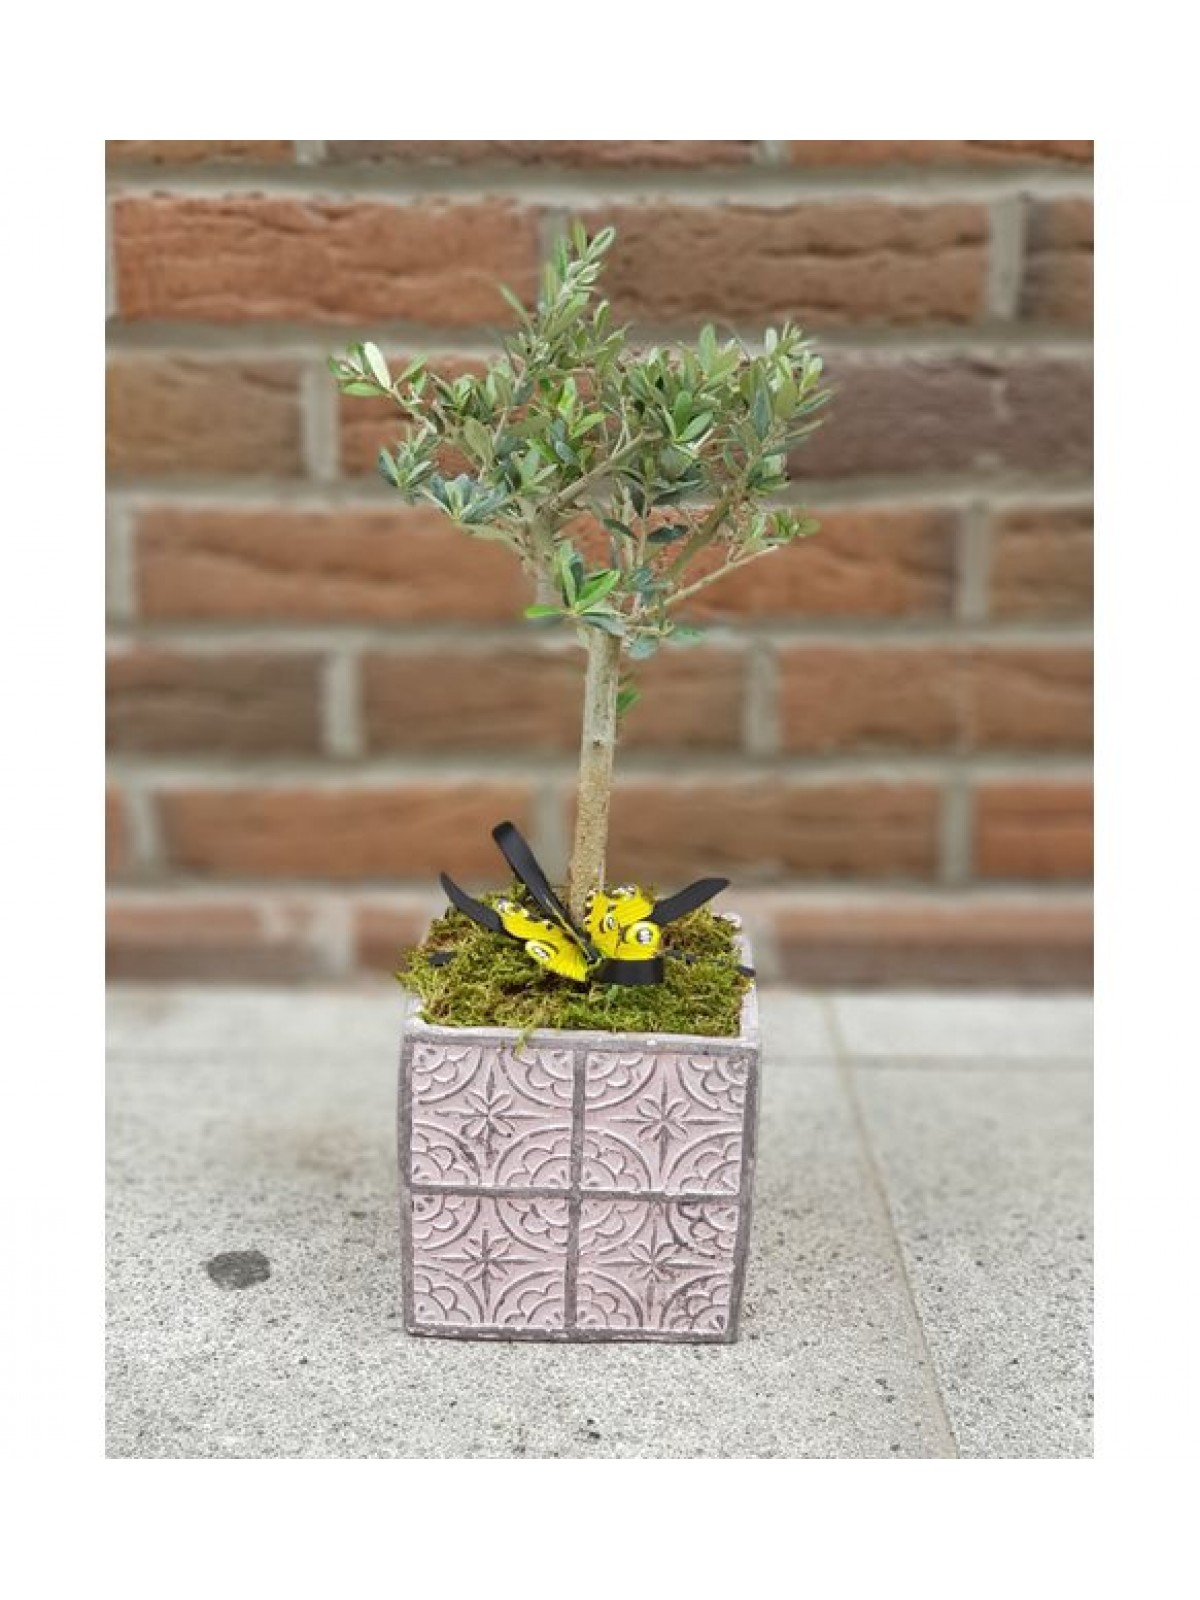 Zeytin bonsai 3 pink